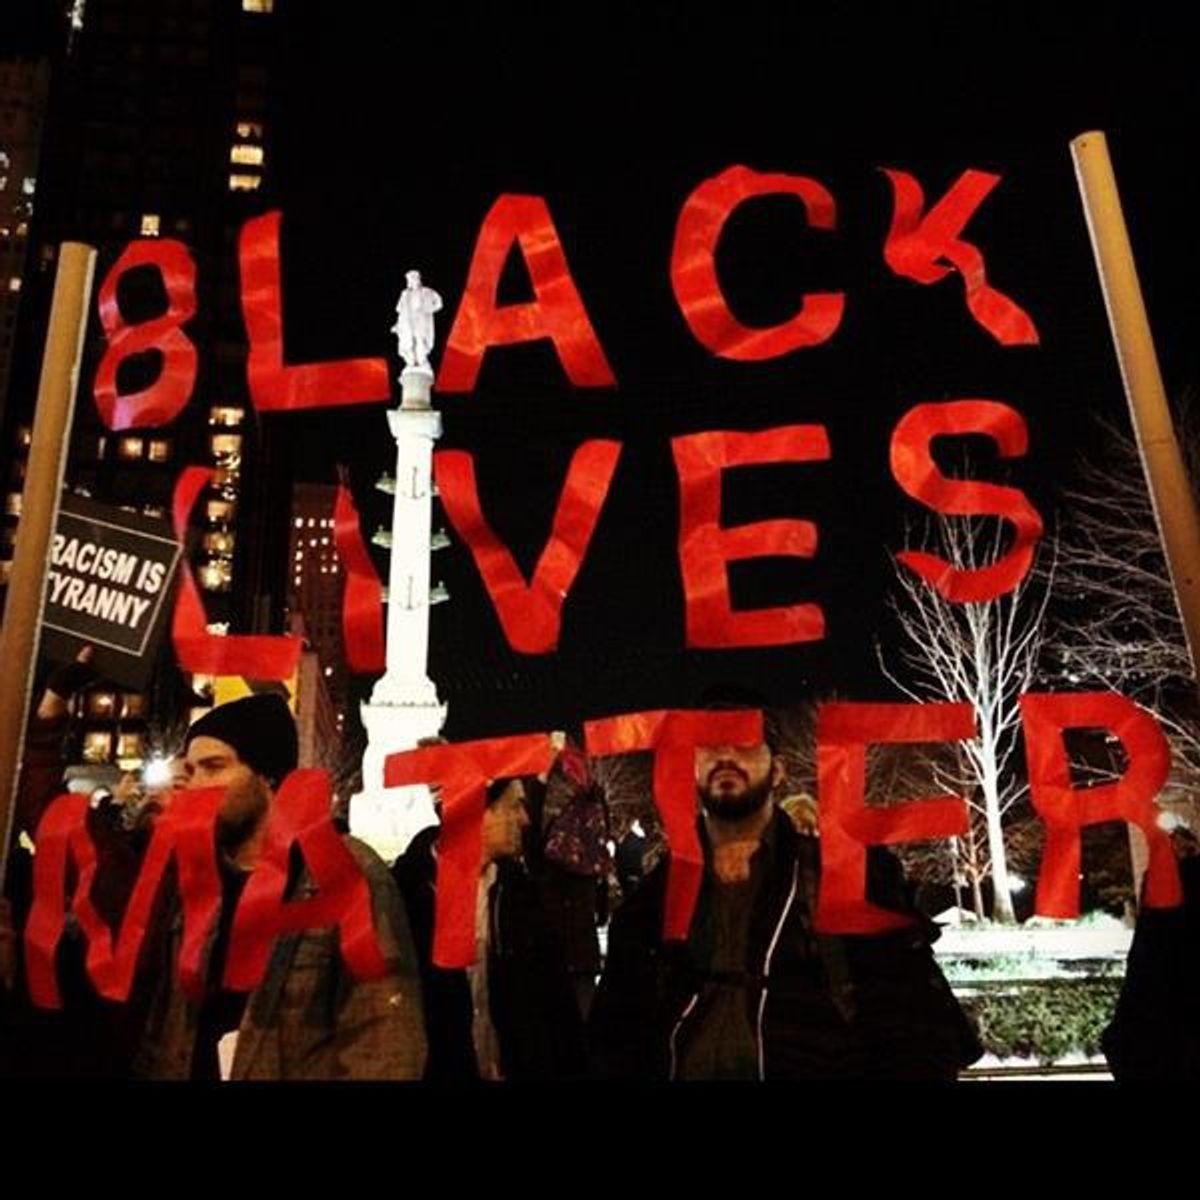 Black Is Beauty: Why We Need Love And Unity In Light of Recent Events